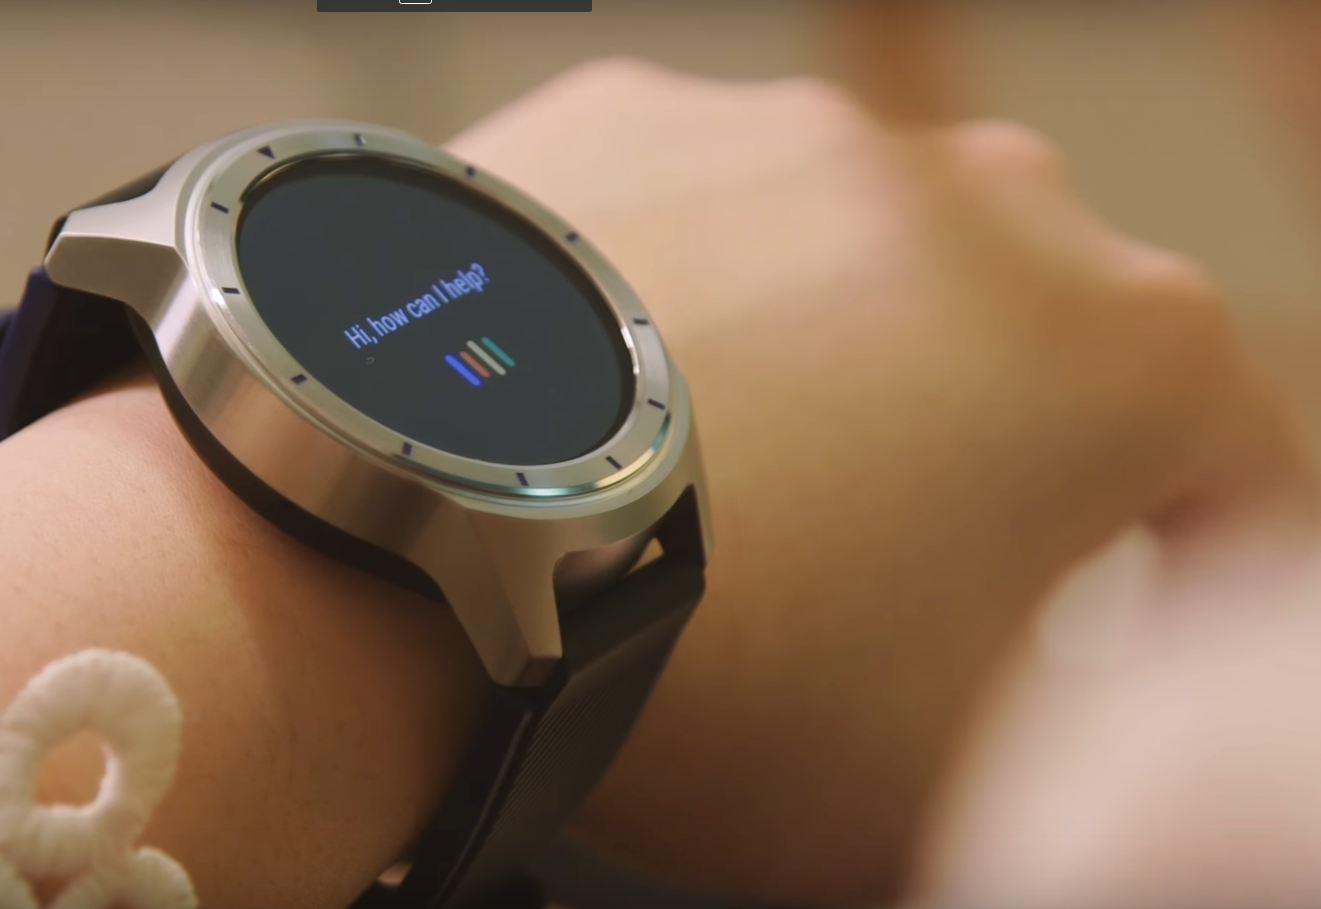 can help zte quartz smartwatch price real question